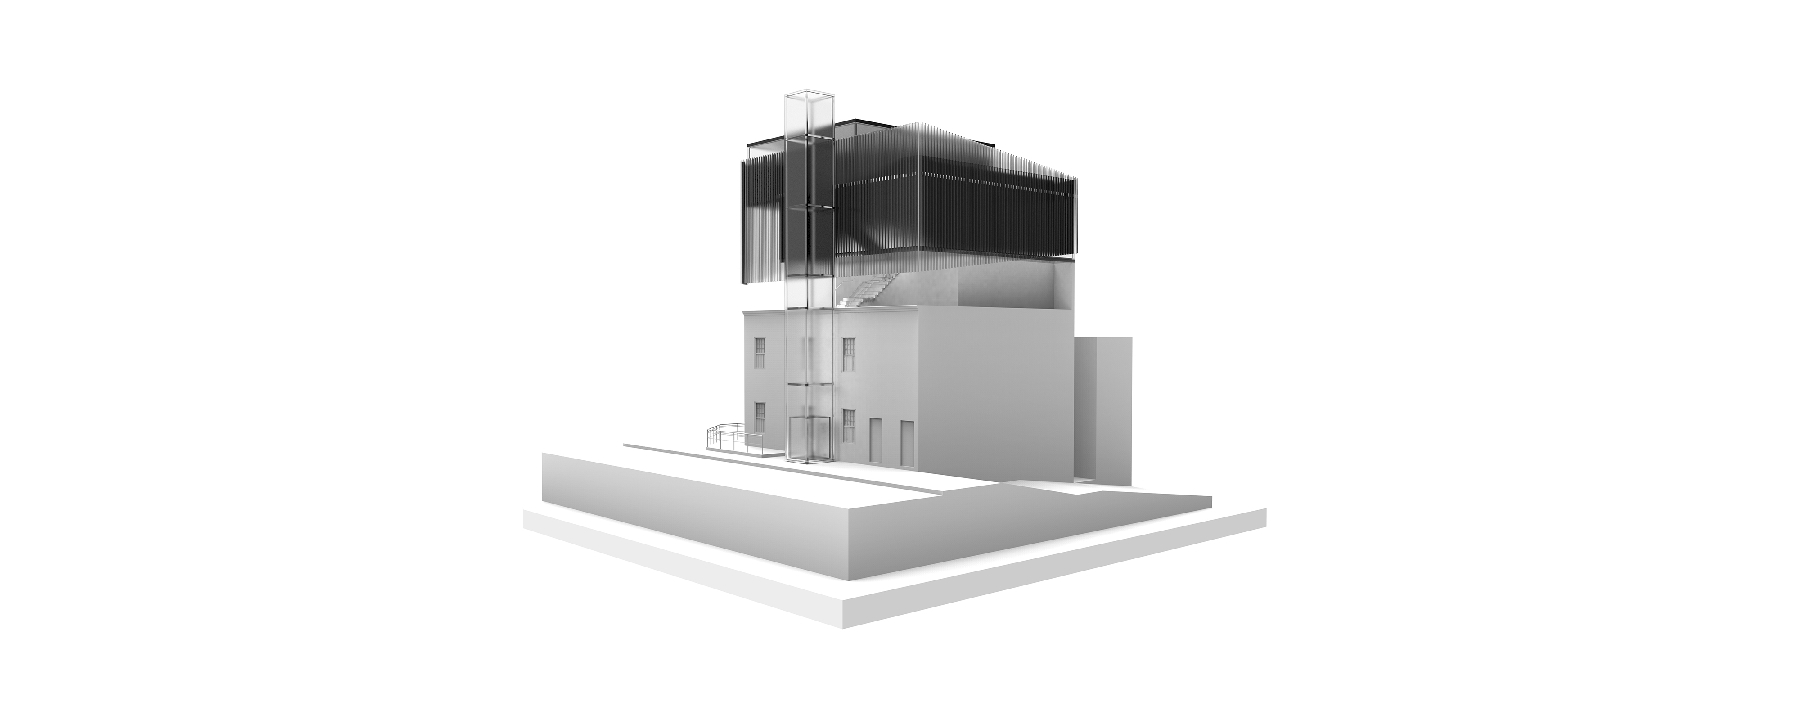 Handre de la Rey Cape Town Architecture Proposal 003